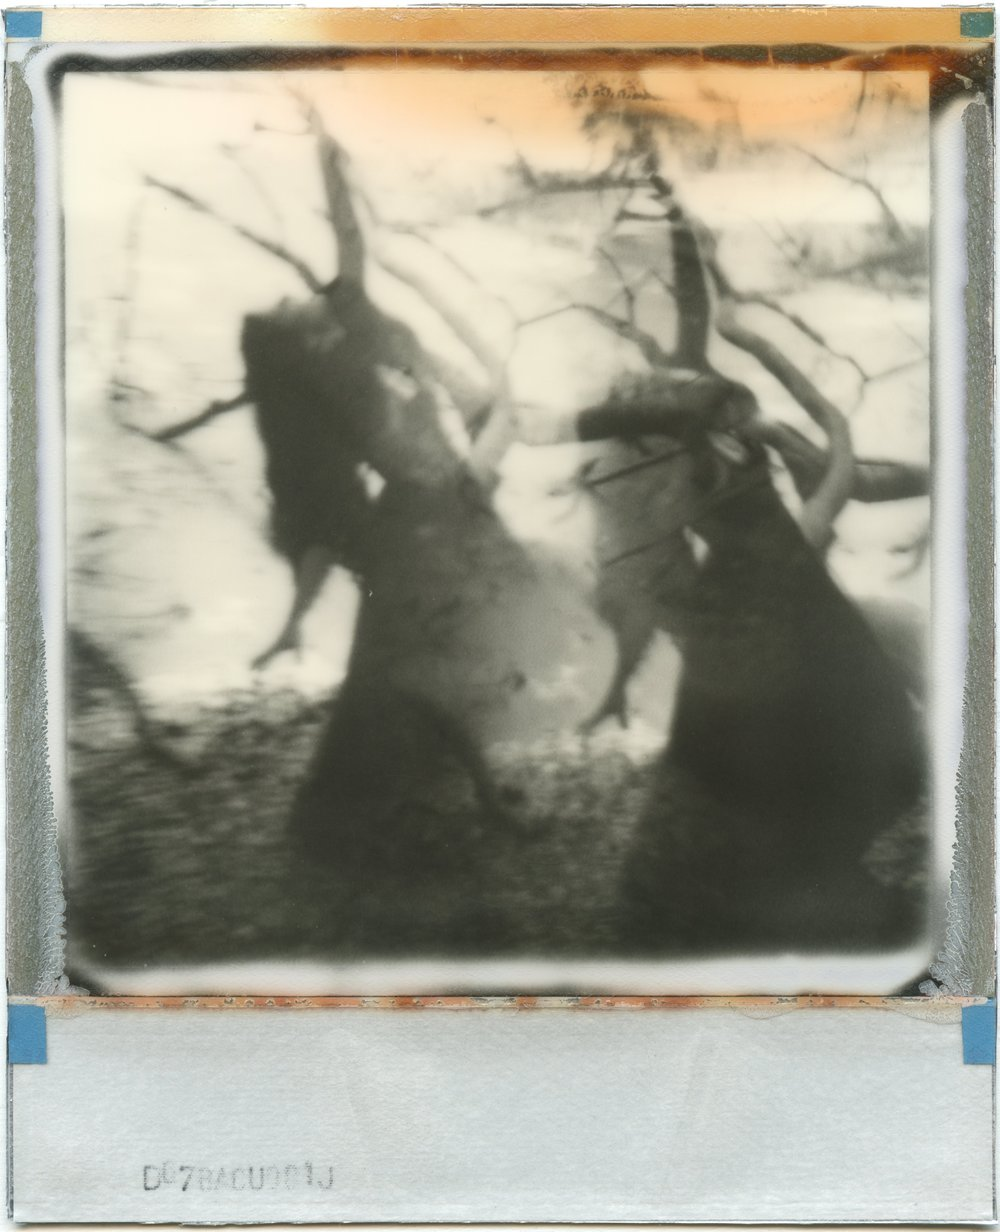 She's Lost Control | Polaroid SLR680 | Impossible Project PX600 B/W | Julia Beyer